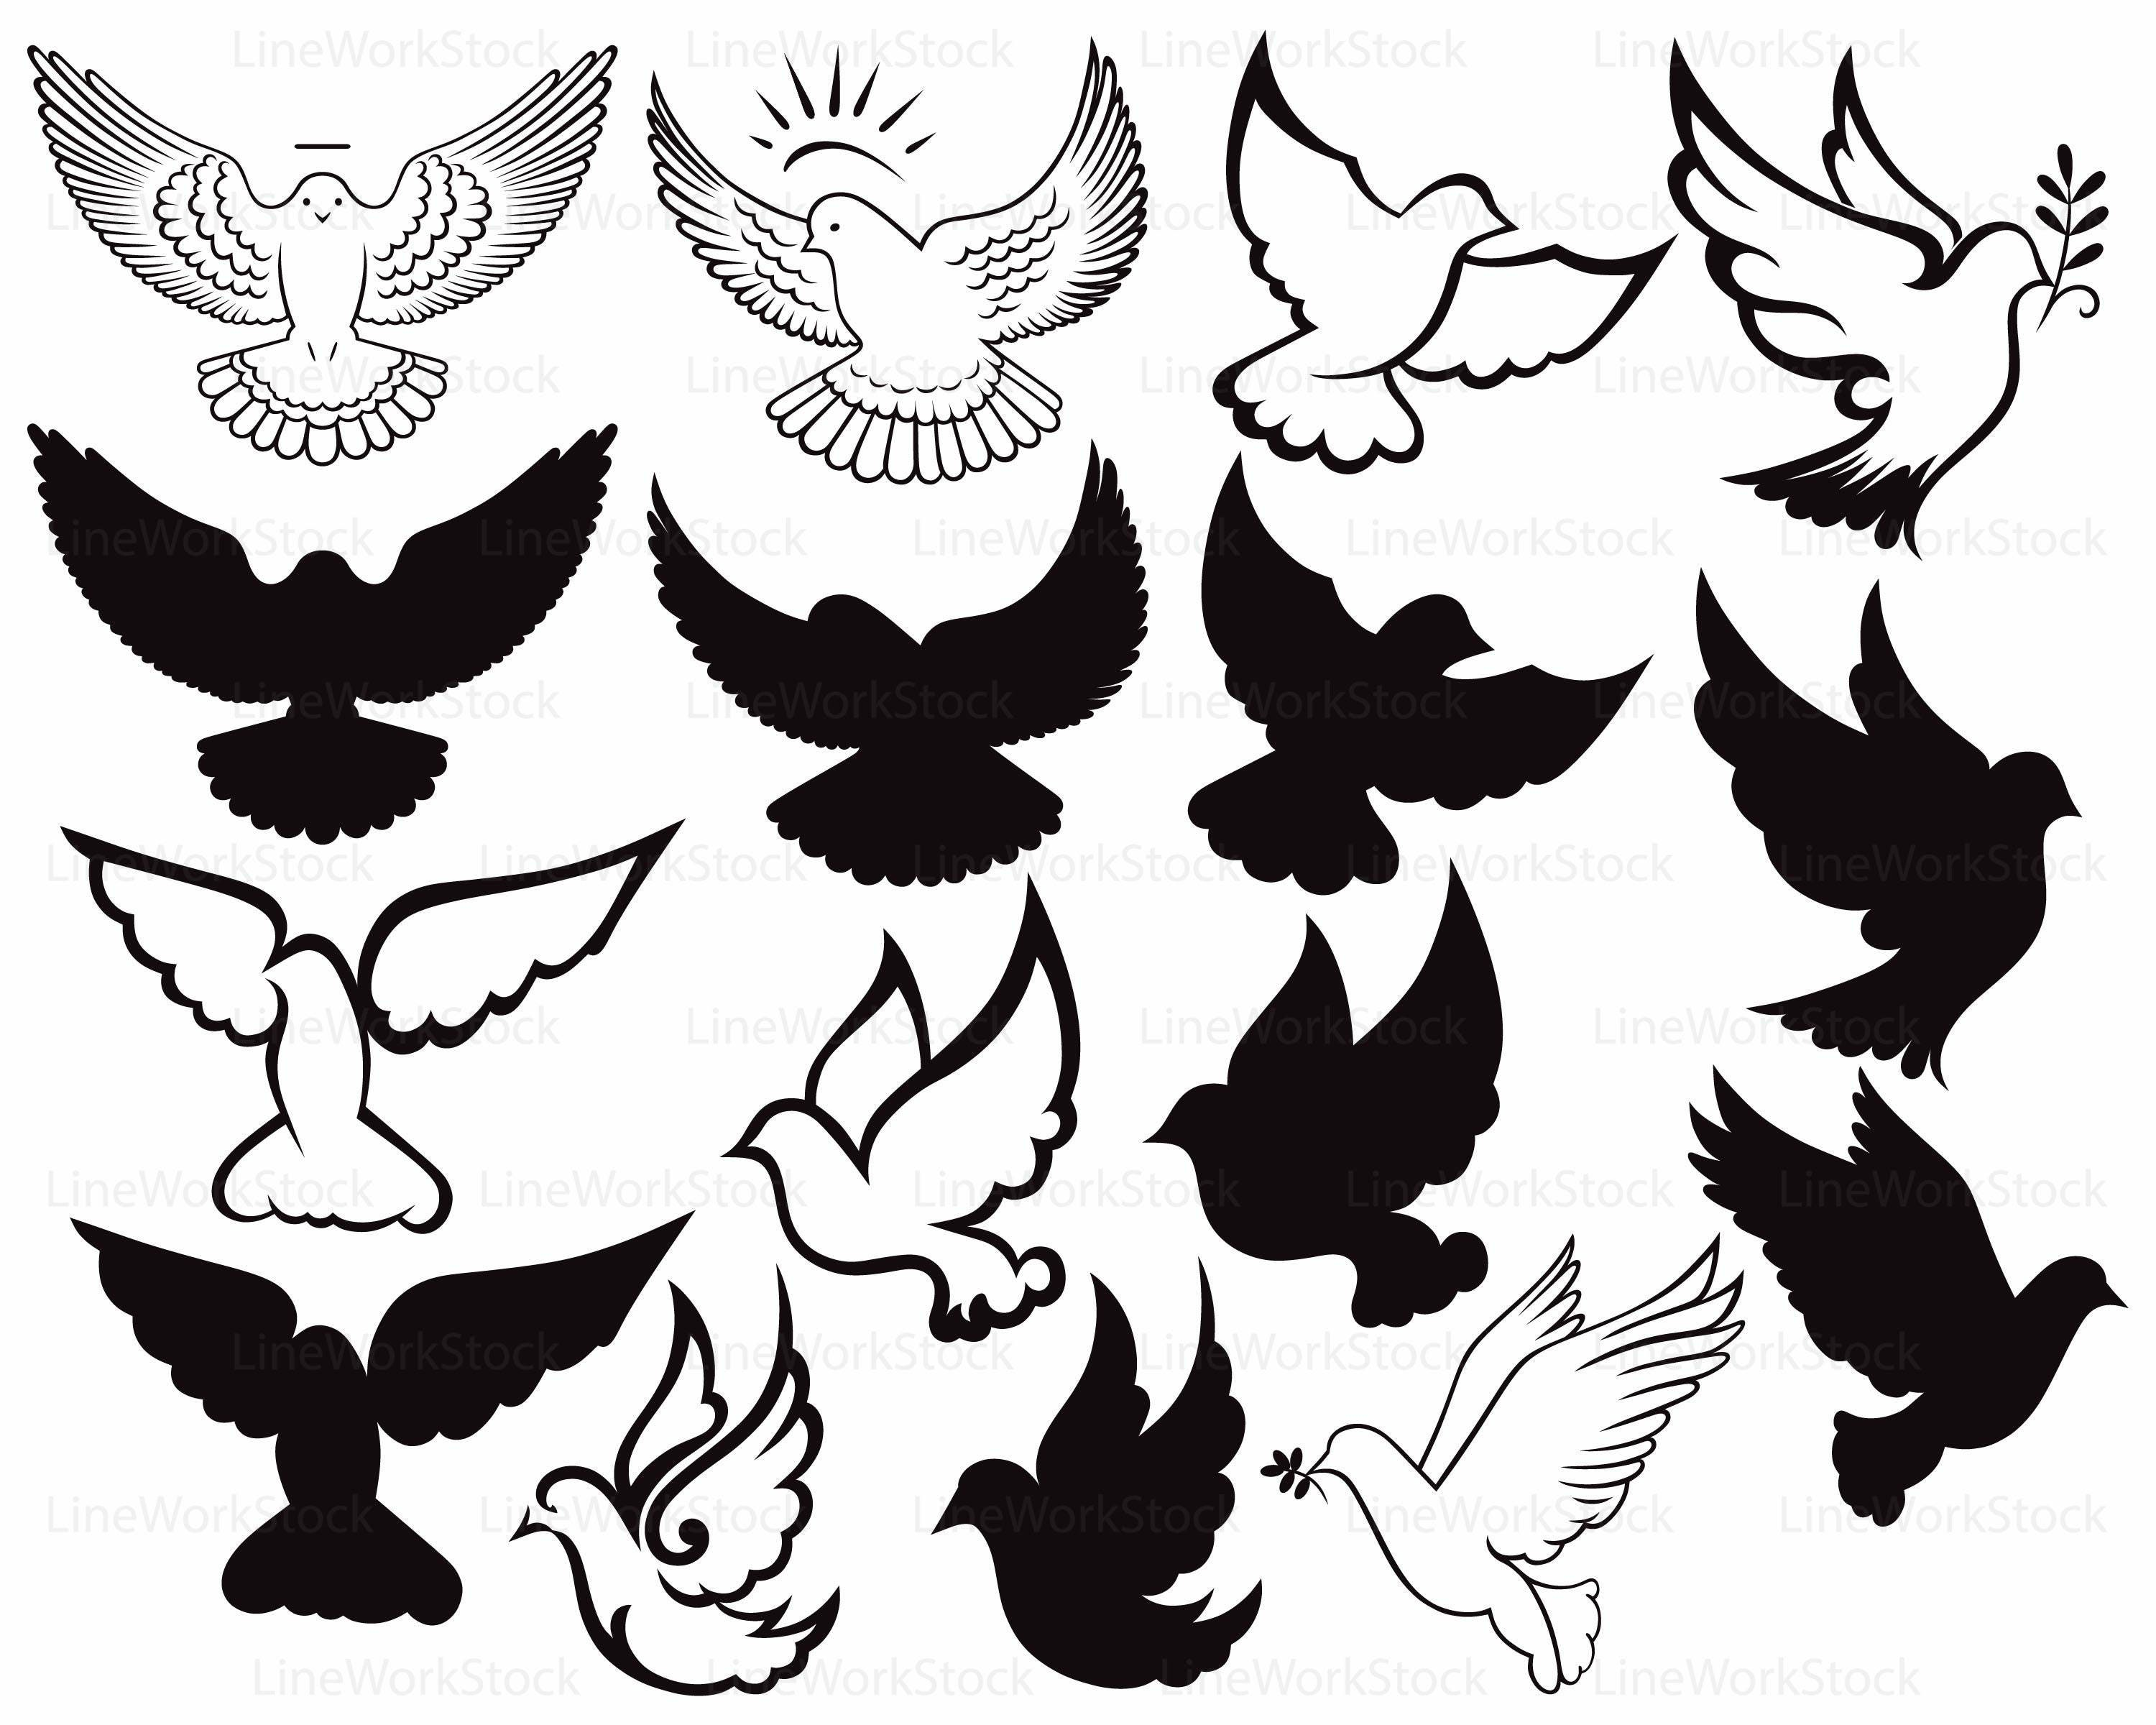 Dove Svg Clipart Peace Silhouette